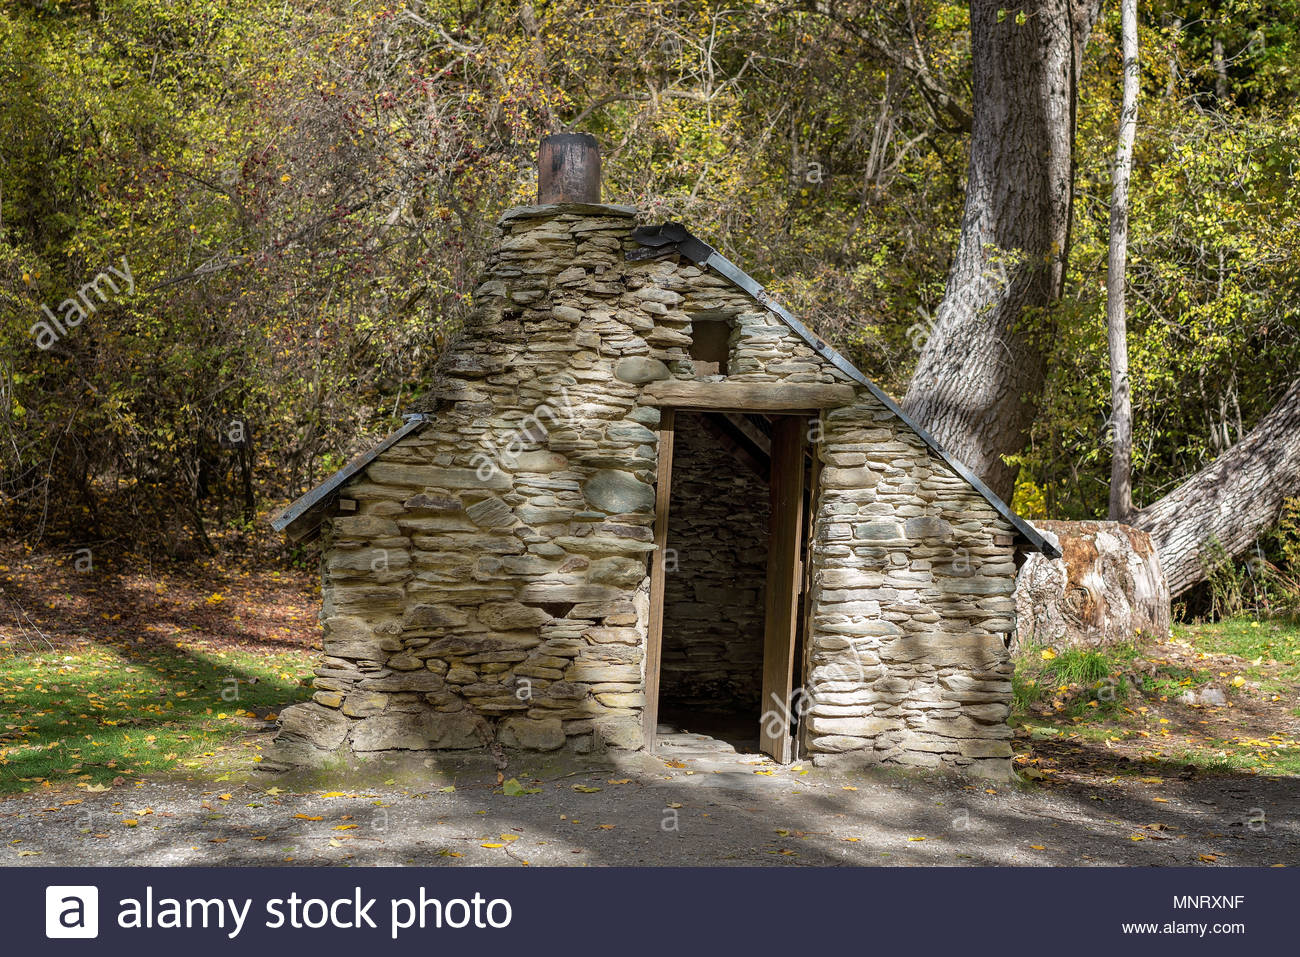 Chinese Workers Hut Built During The Gold Rush Days In Arrowtown New